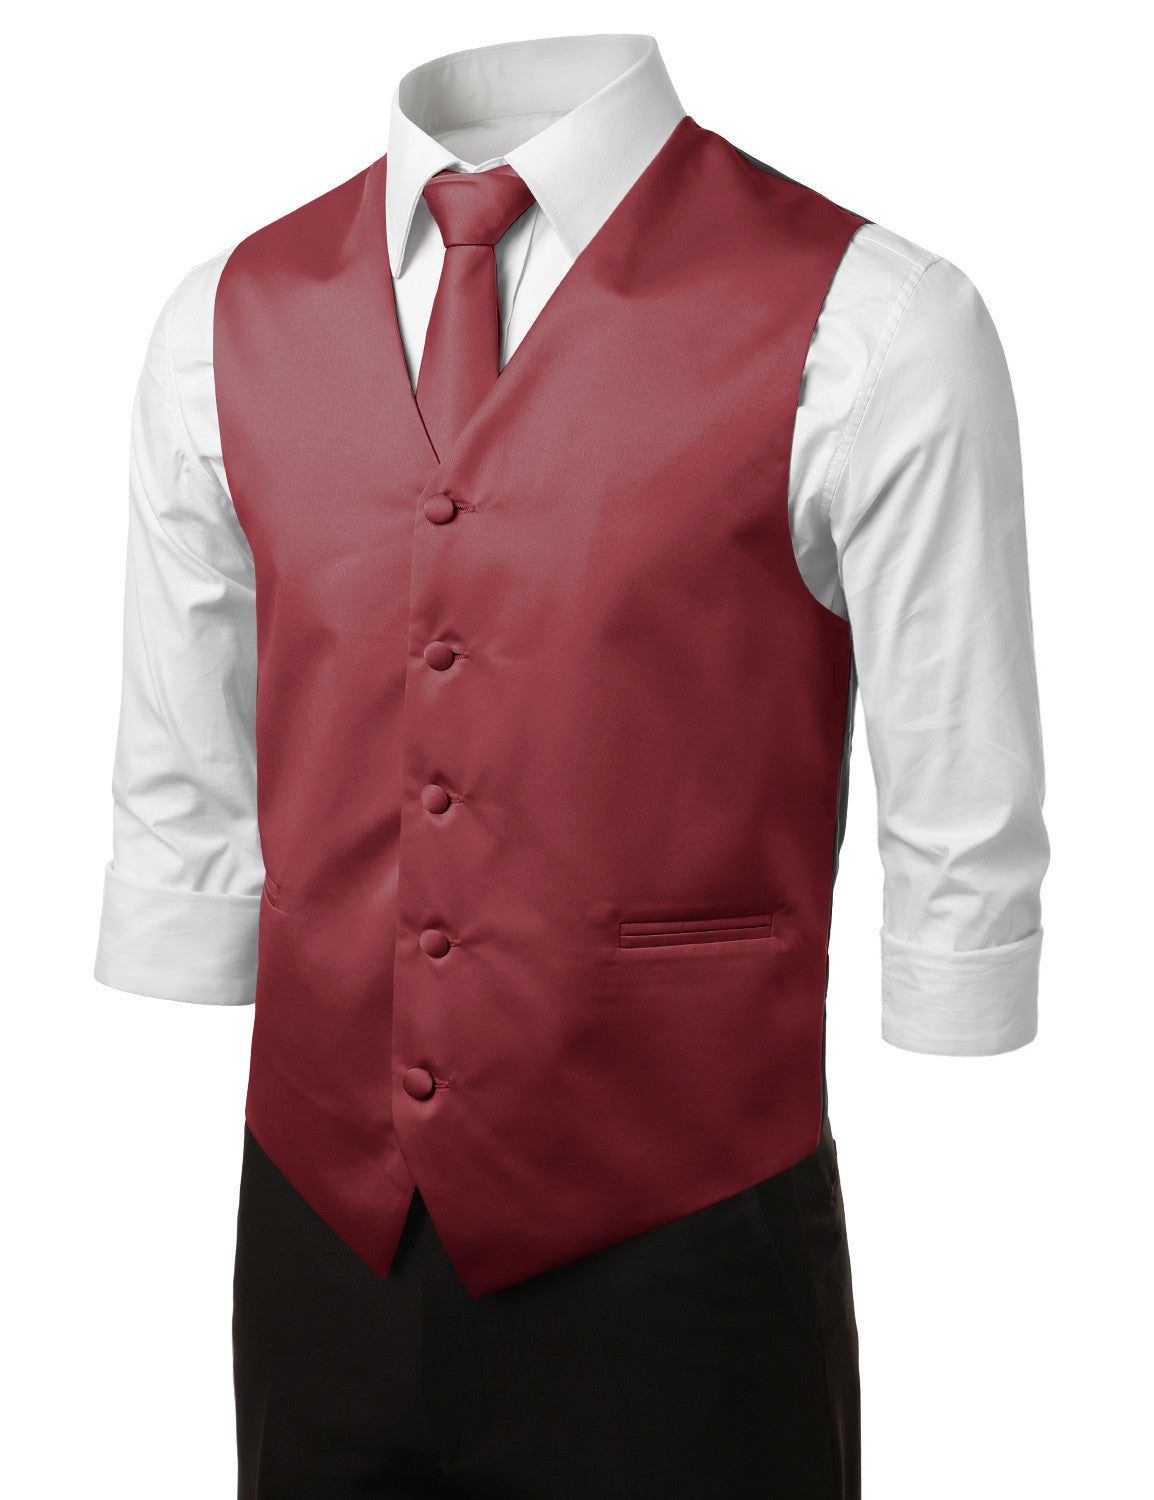 BURGUNDY23 Formal Tuxedo 3 Piece Vest Set (Vest, Necktie, Pocket Square)- MONDAYSUIT